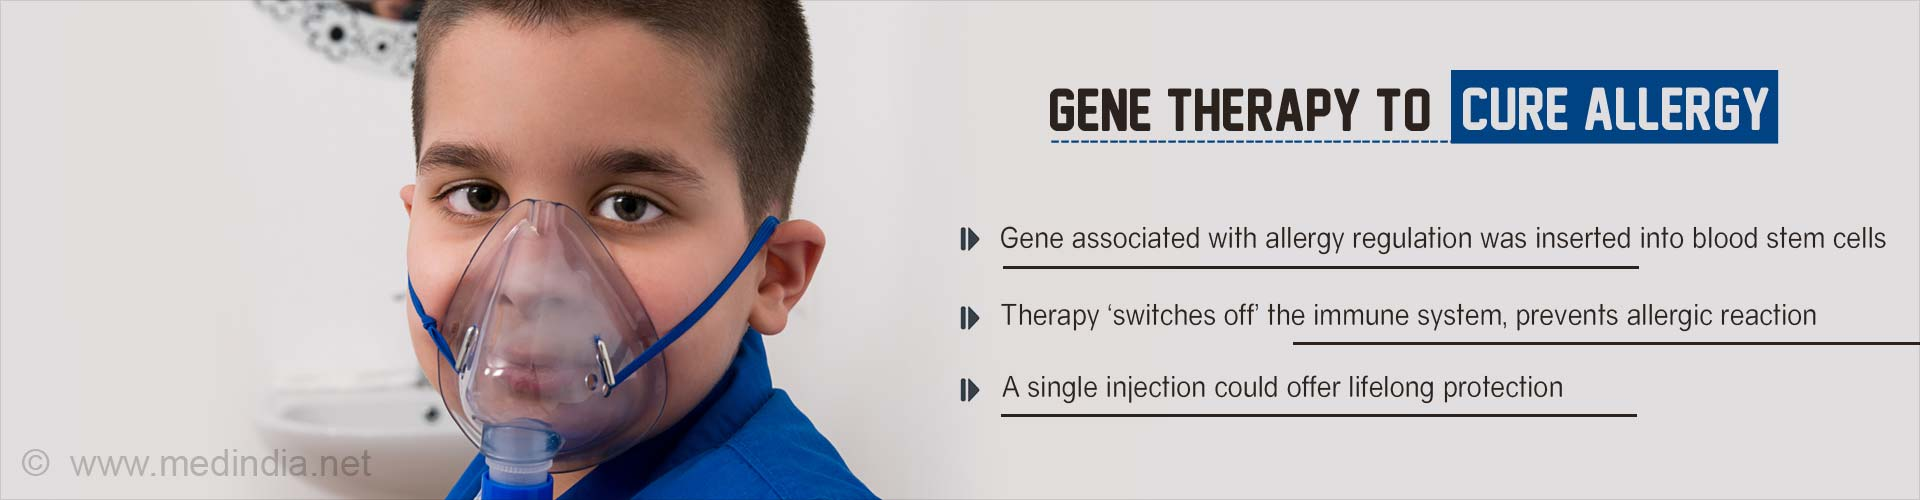 Gene therapy to cure allergy - Gene associated with allergy regulation was inserted into blood stem cells - Therapy